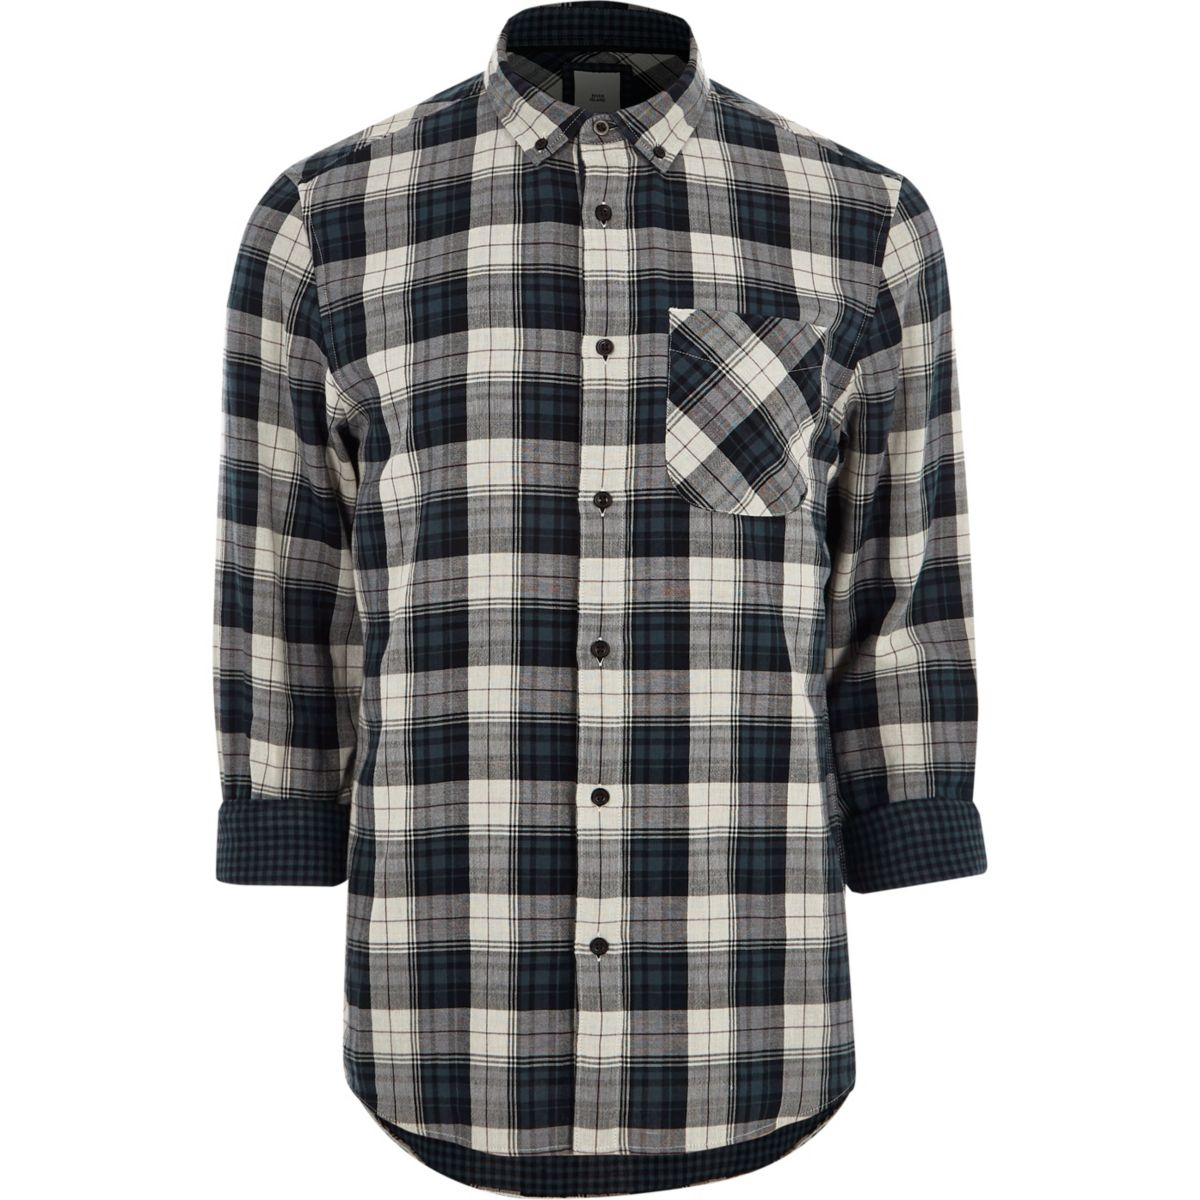 Grey long sleeve button down check shirt shirts sale men for Grey button down shirt